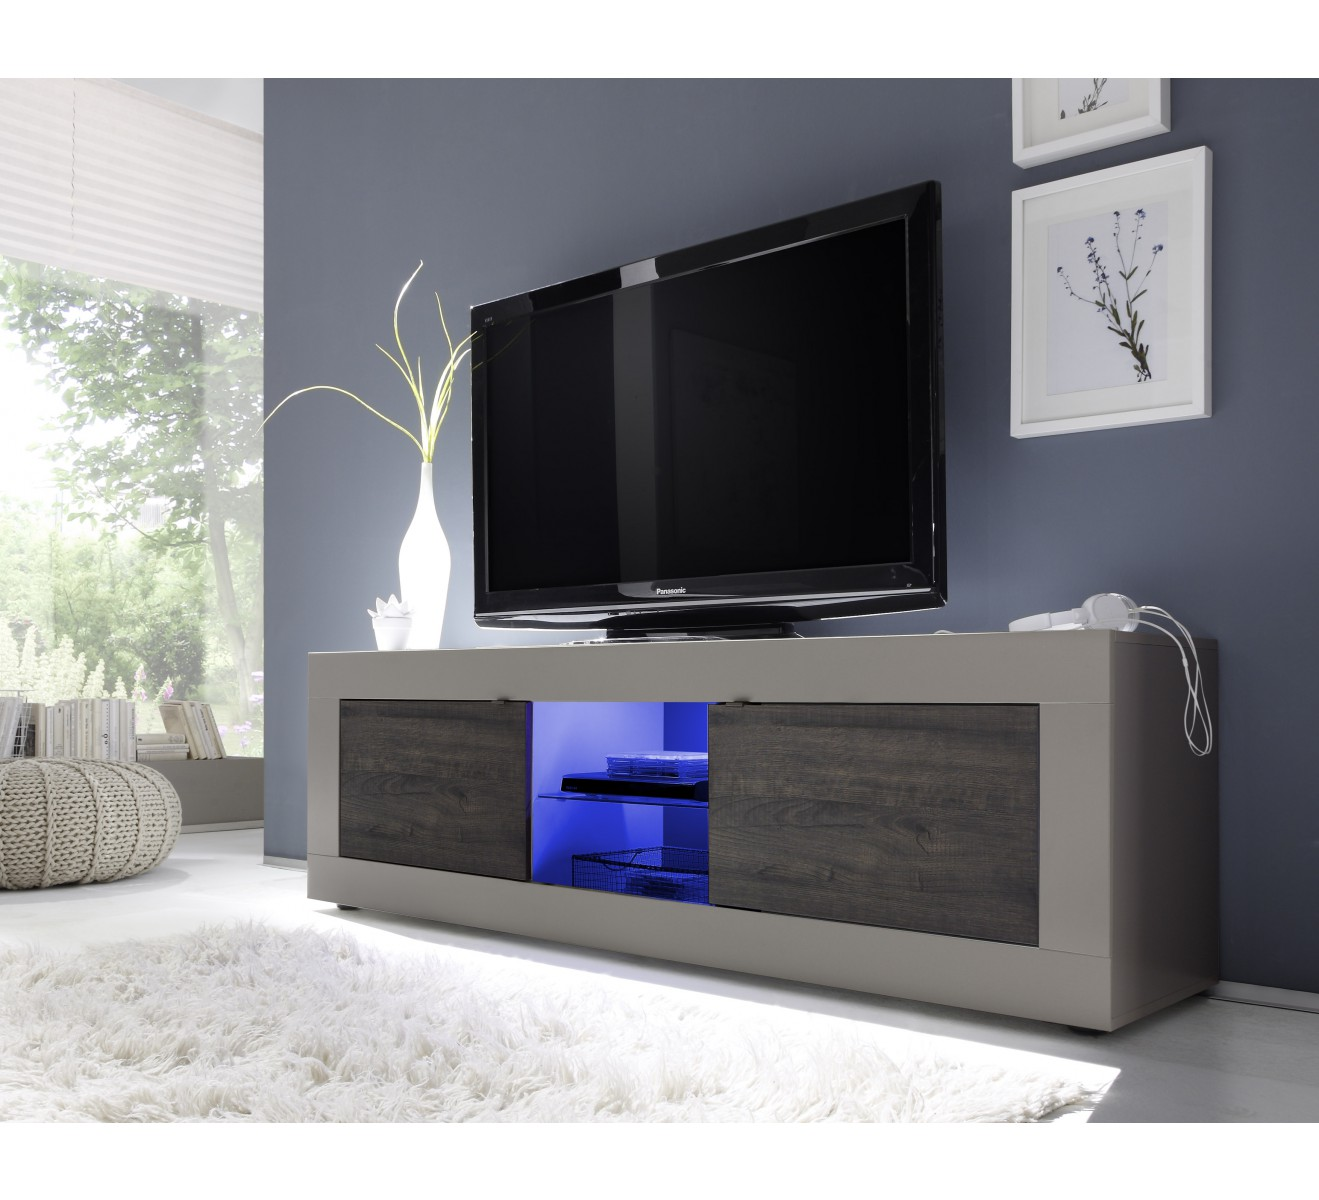 Grand meuble tv moderne laque avec leds 6753 for Meuble tv grand